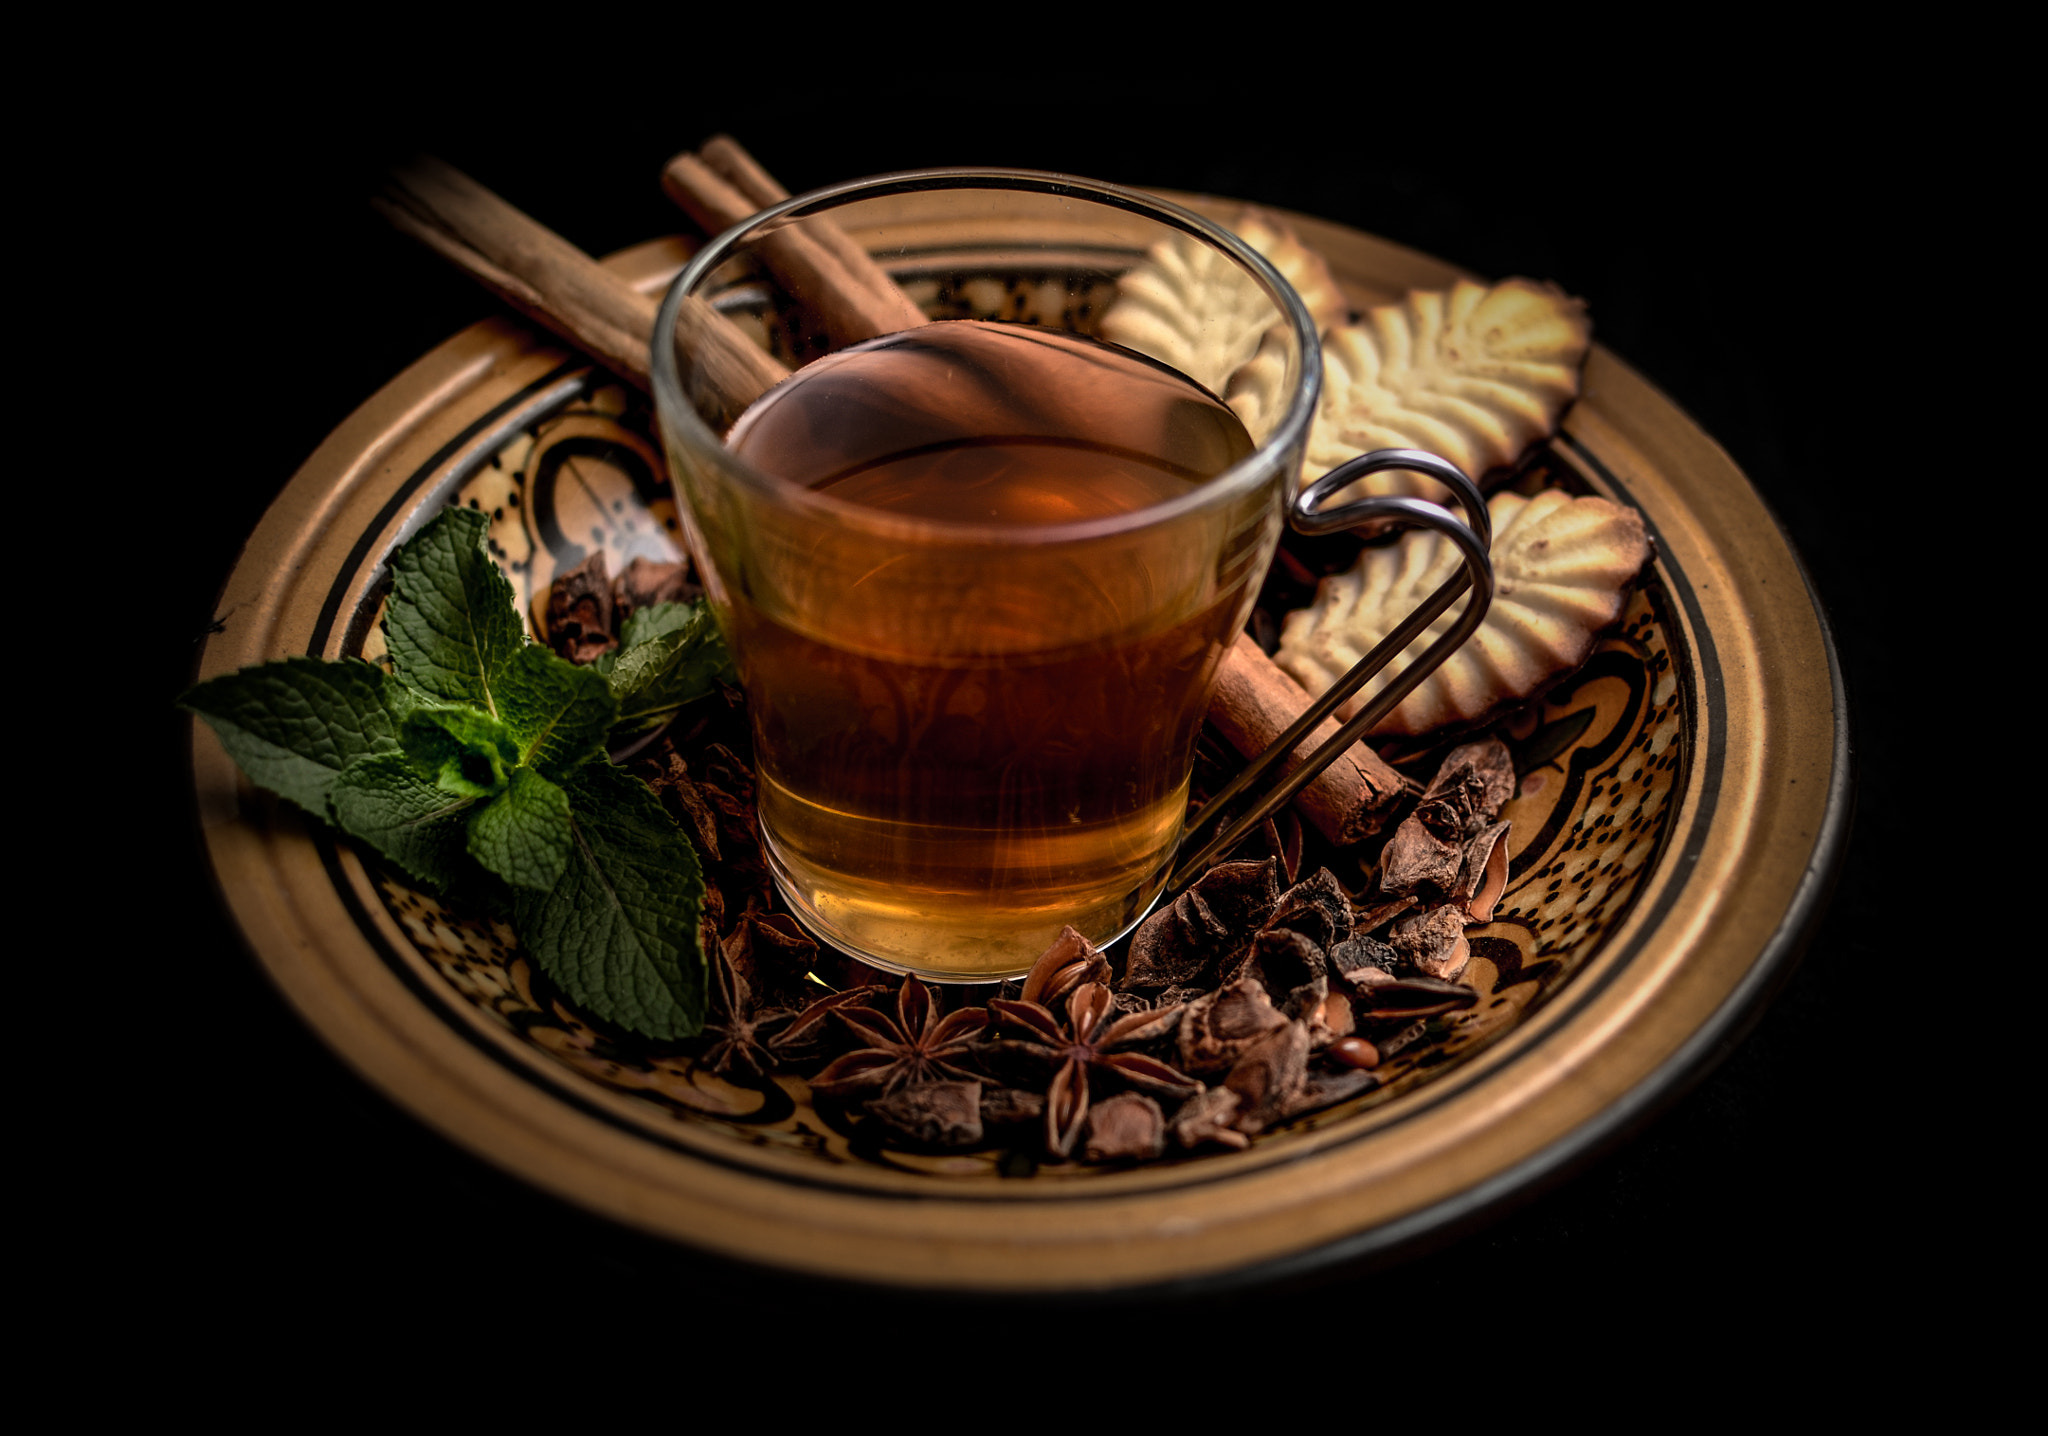 Photograph Tea made Special by Swiss Media Studio on 500px